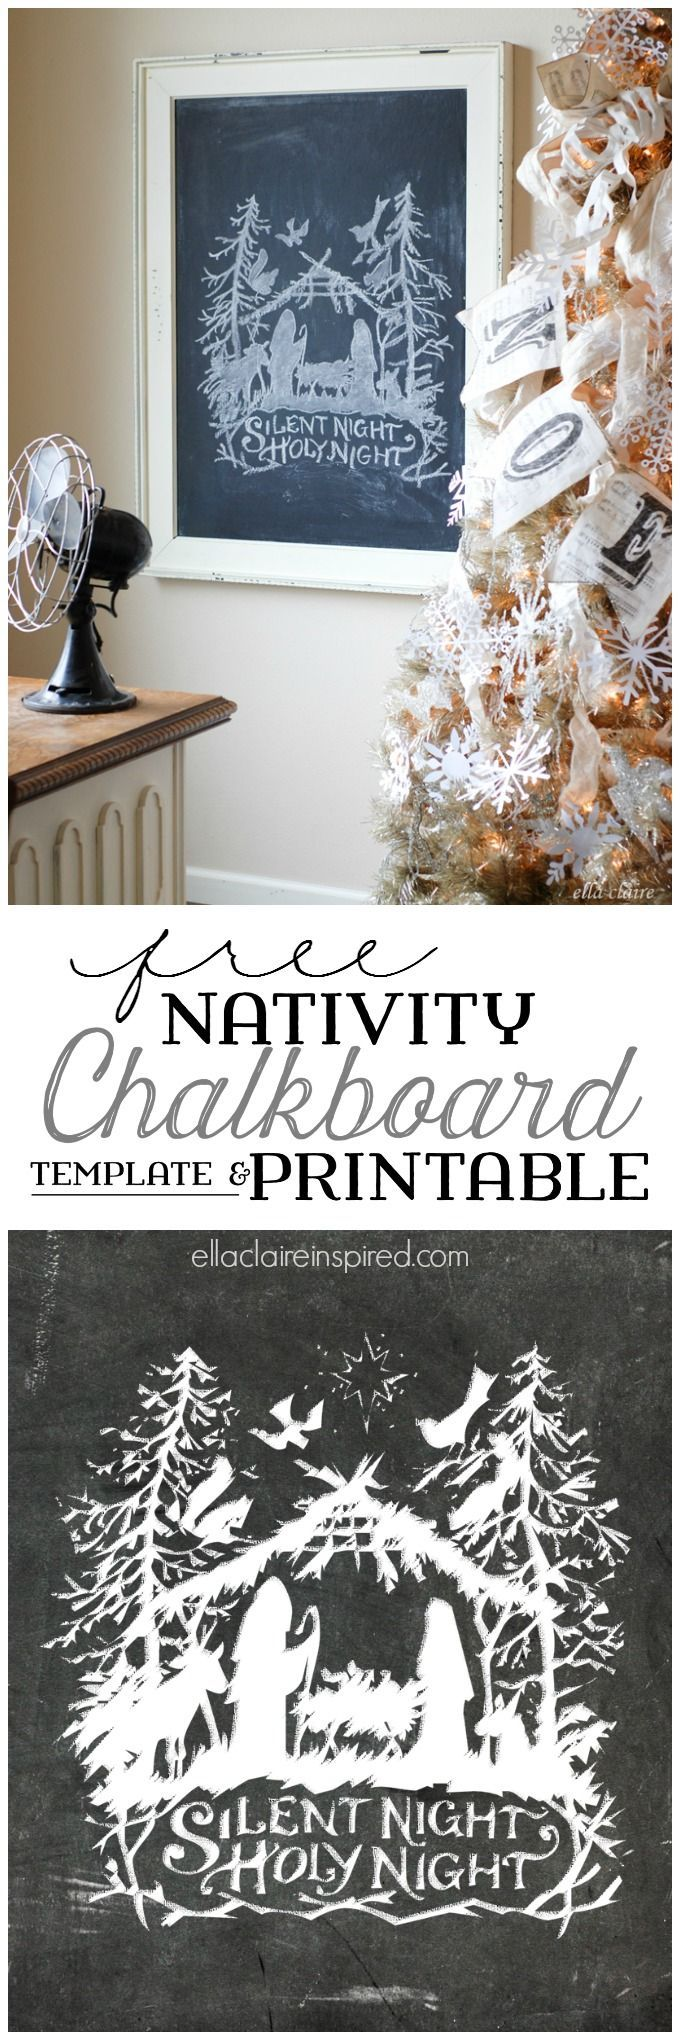 Print the Chalkboard printable as-is or use the free template and tutorial to create your own Nativity Chalkboard Art! by Ella Claire.